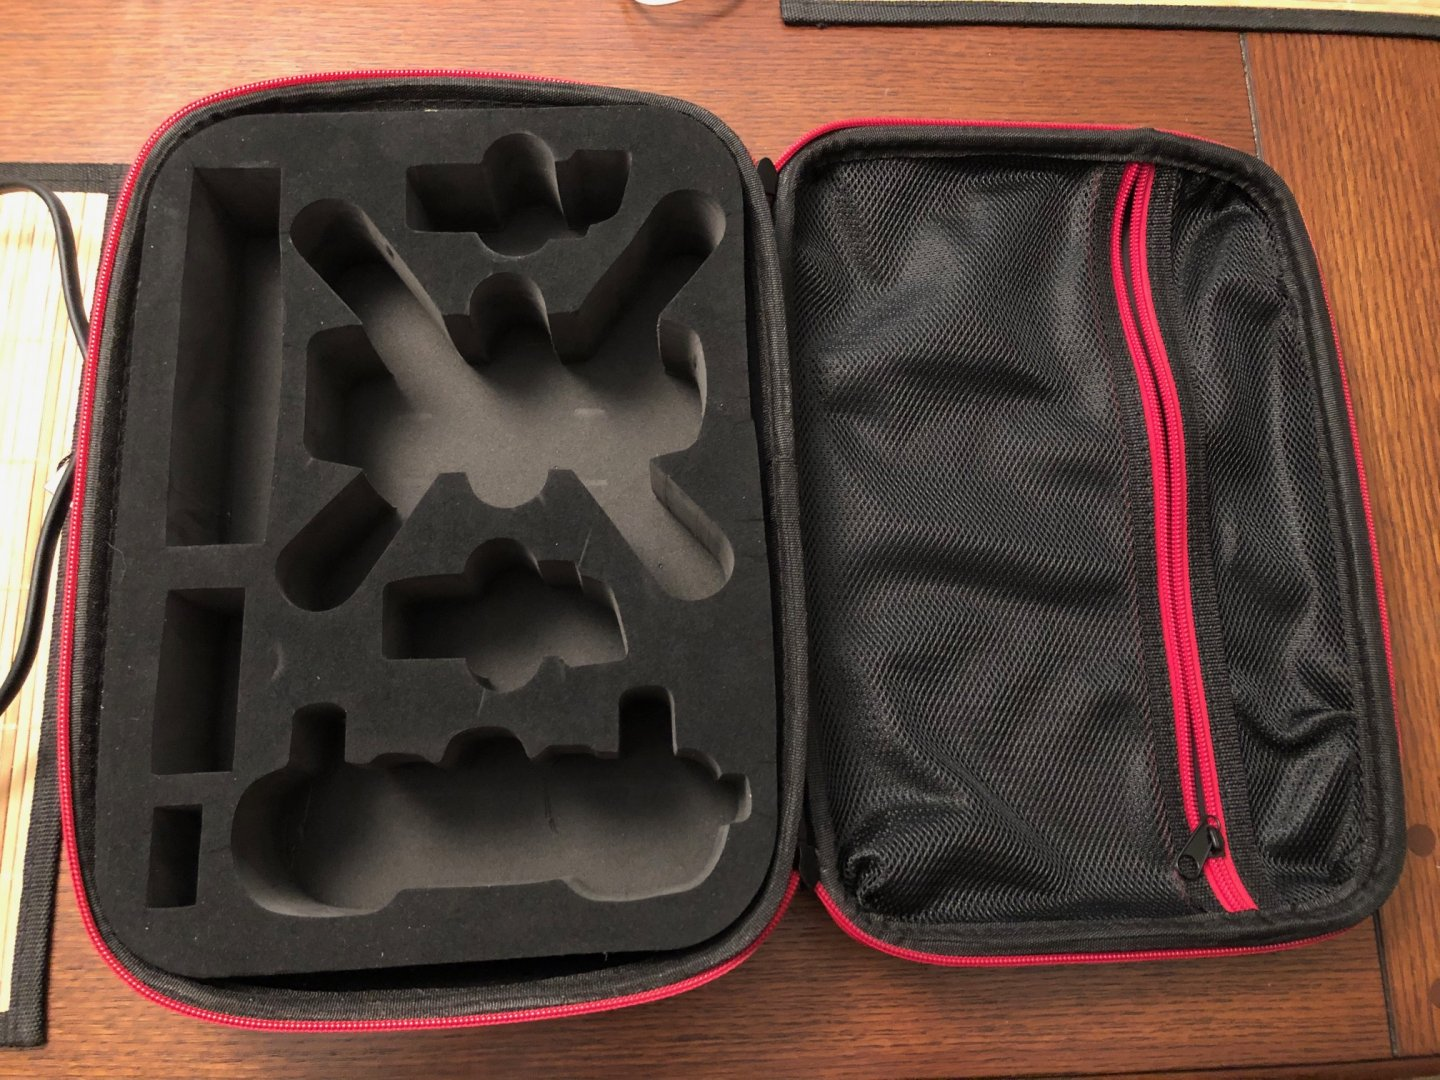 Wts Dji Spark Drone River Daves Place